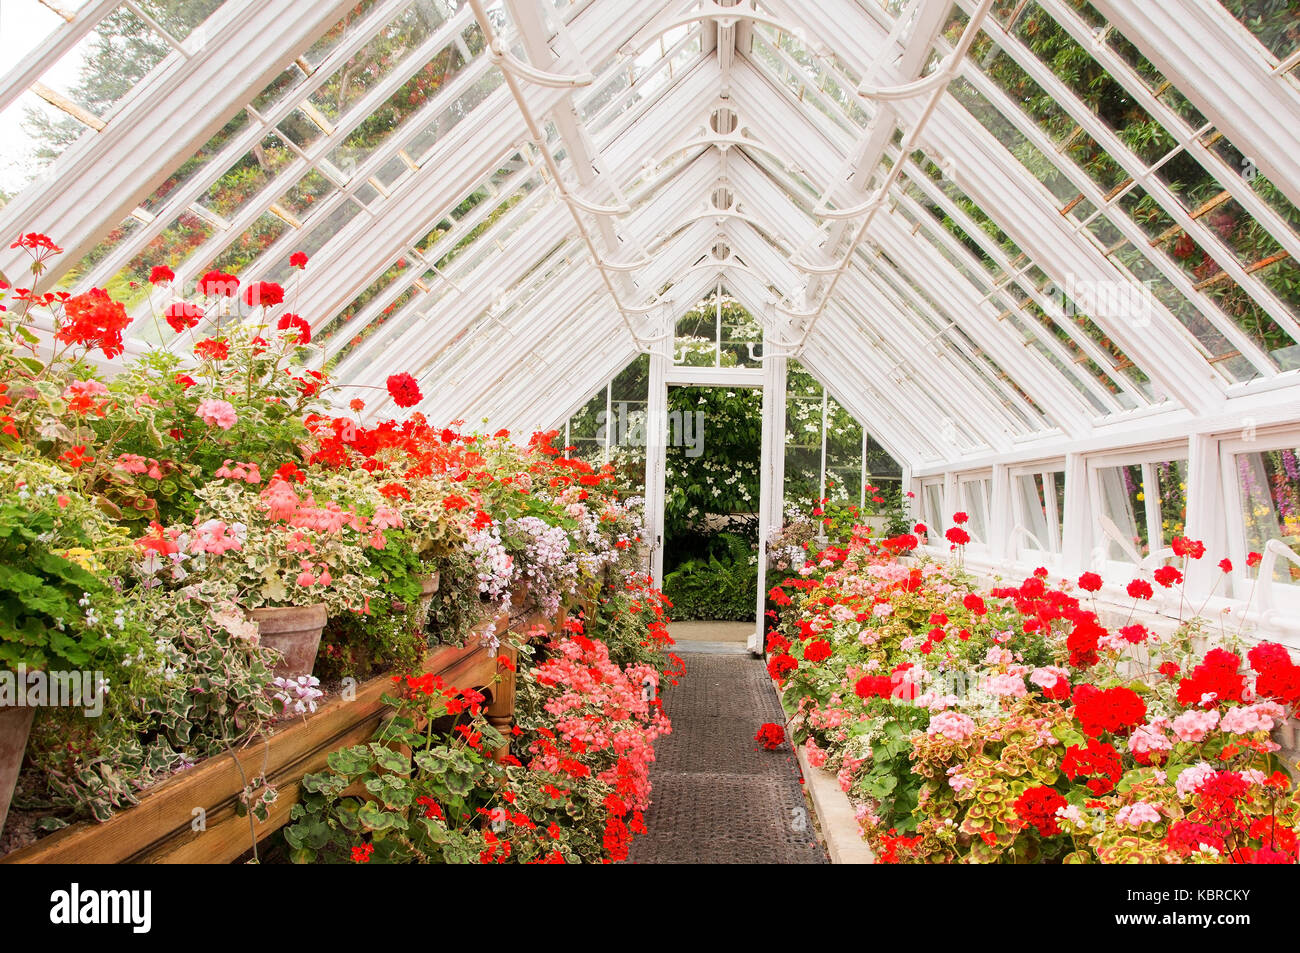 A greenhouse, greenhouse or hothouse is a light-permeable construction which allows protected and controlled cultivating - Stock Image